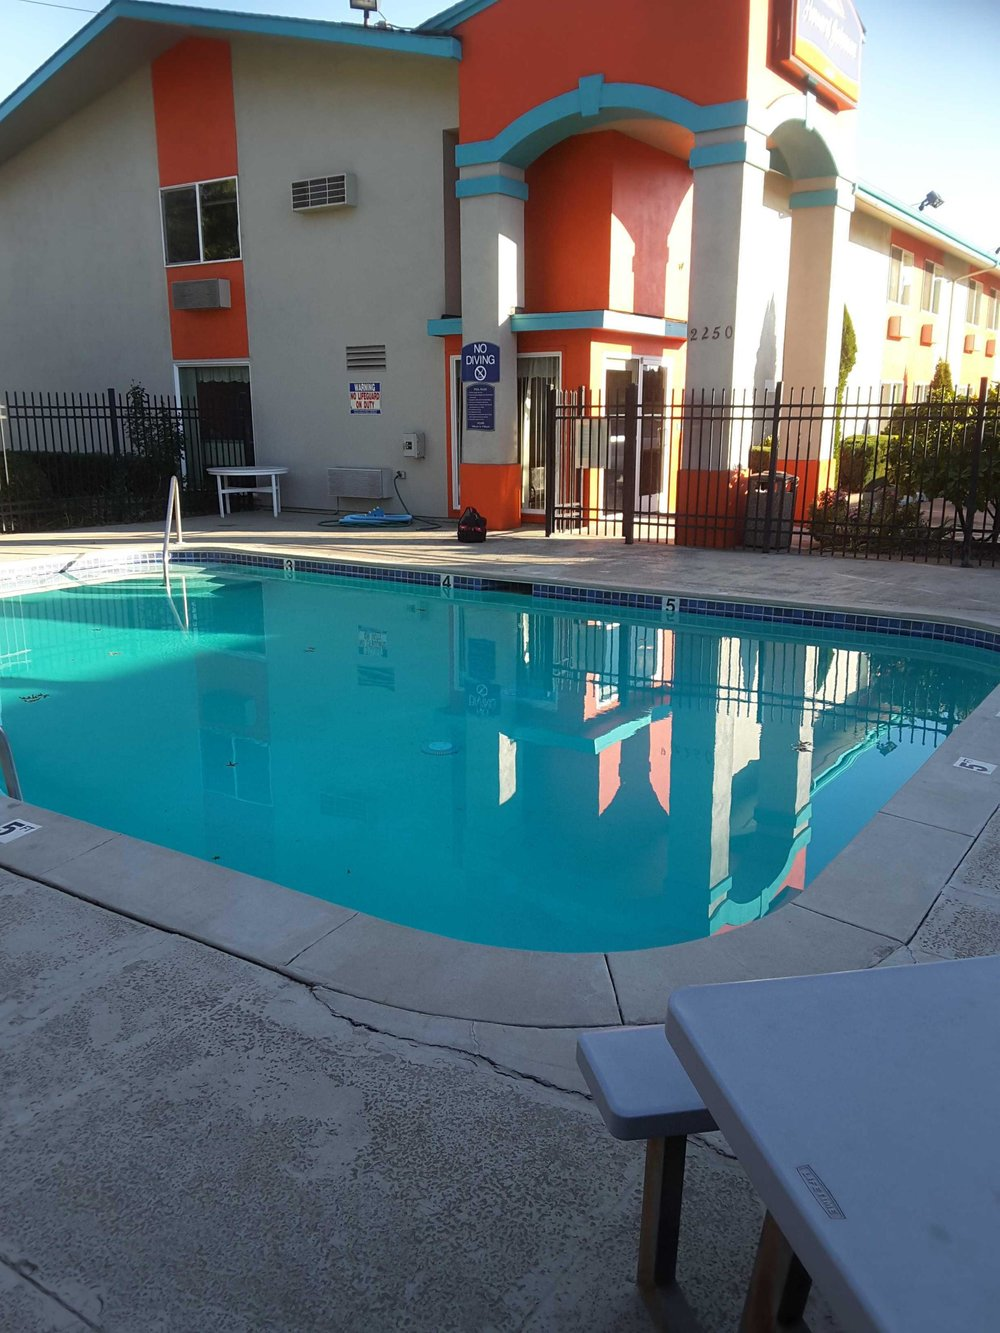 Commercial Swimming Pool Inspections